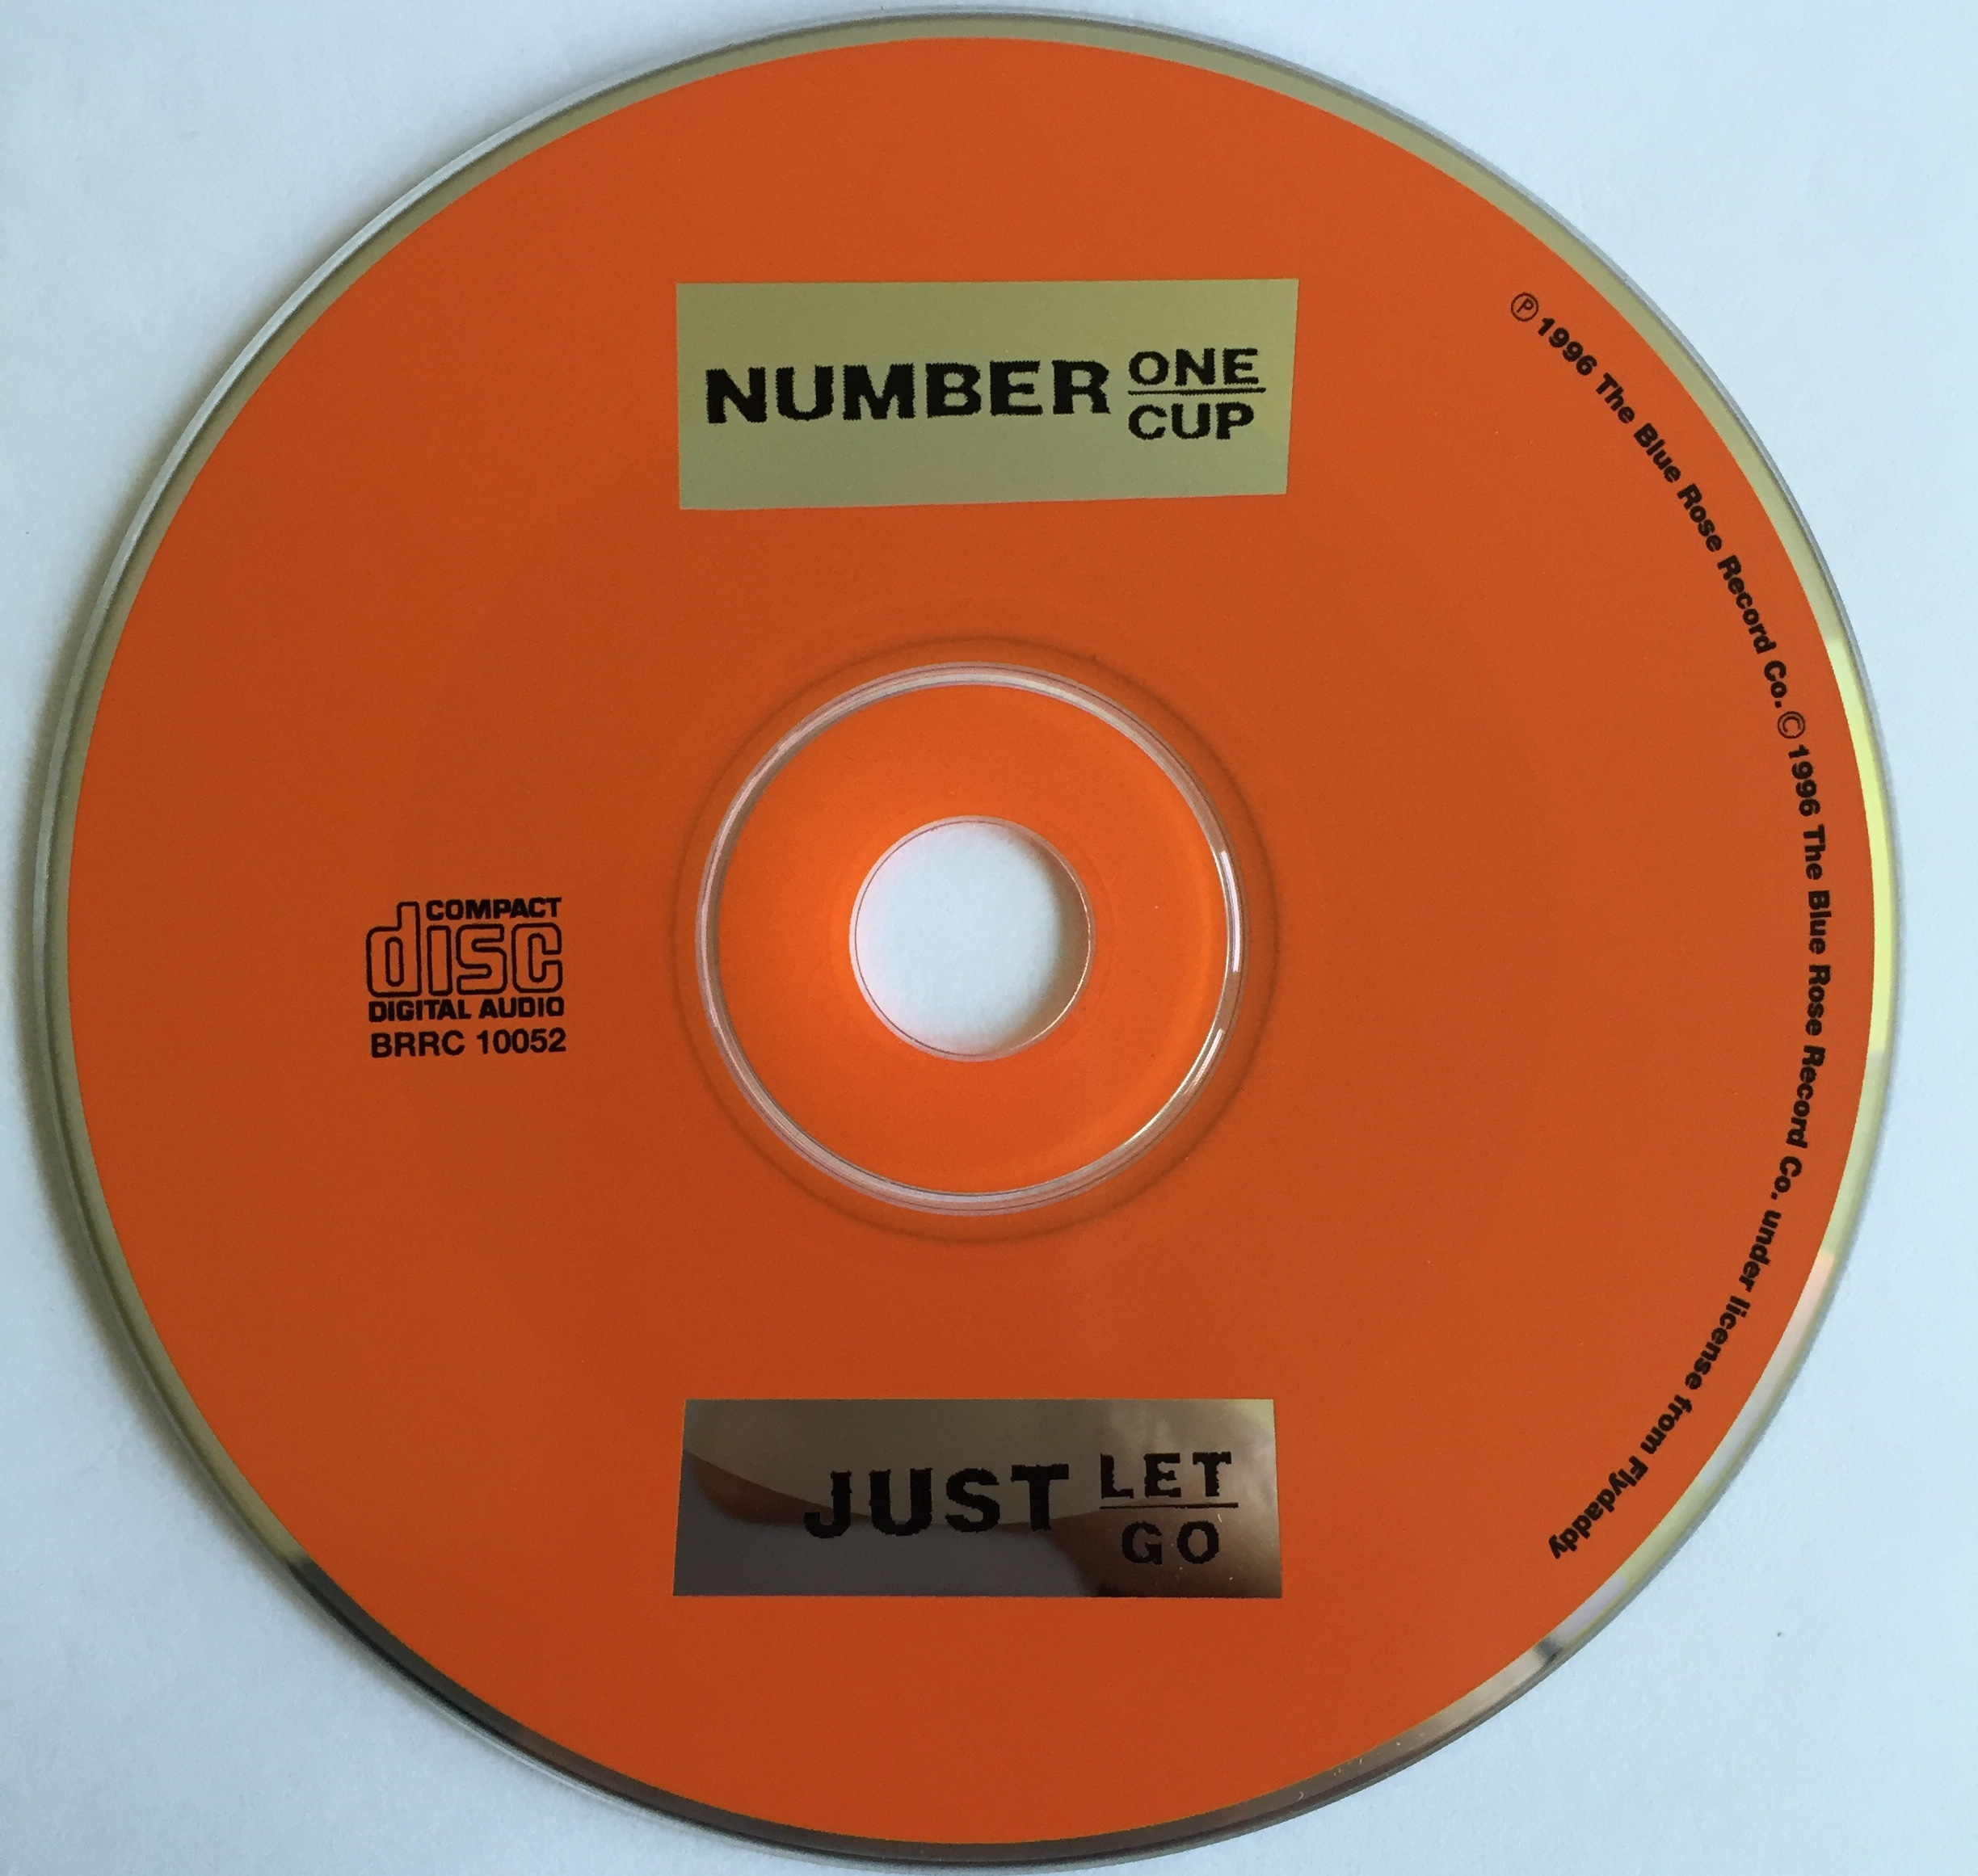 """Sweet Pea RecordsNumber One Cup """"Just Let Go"""" UK CD EP"""